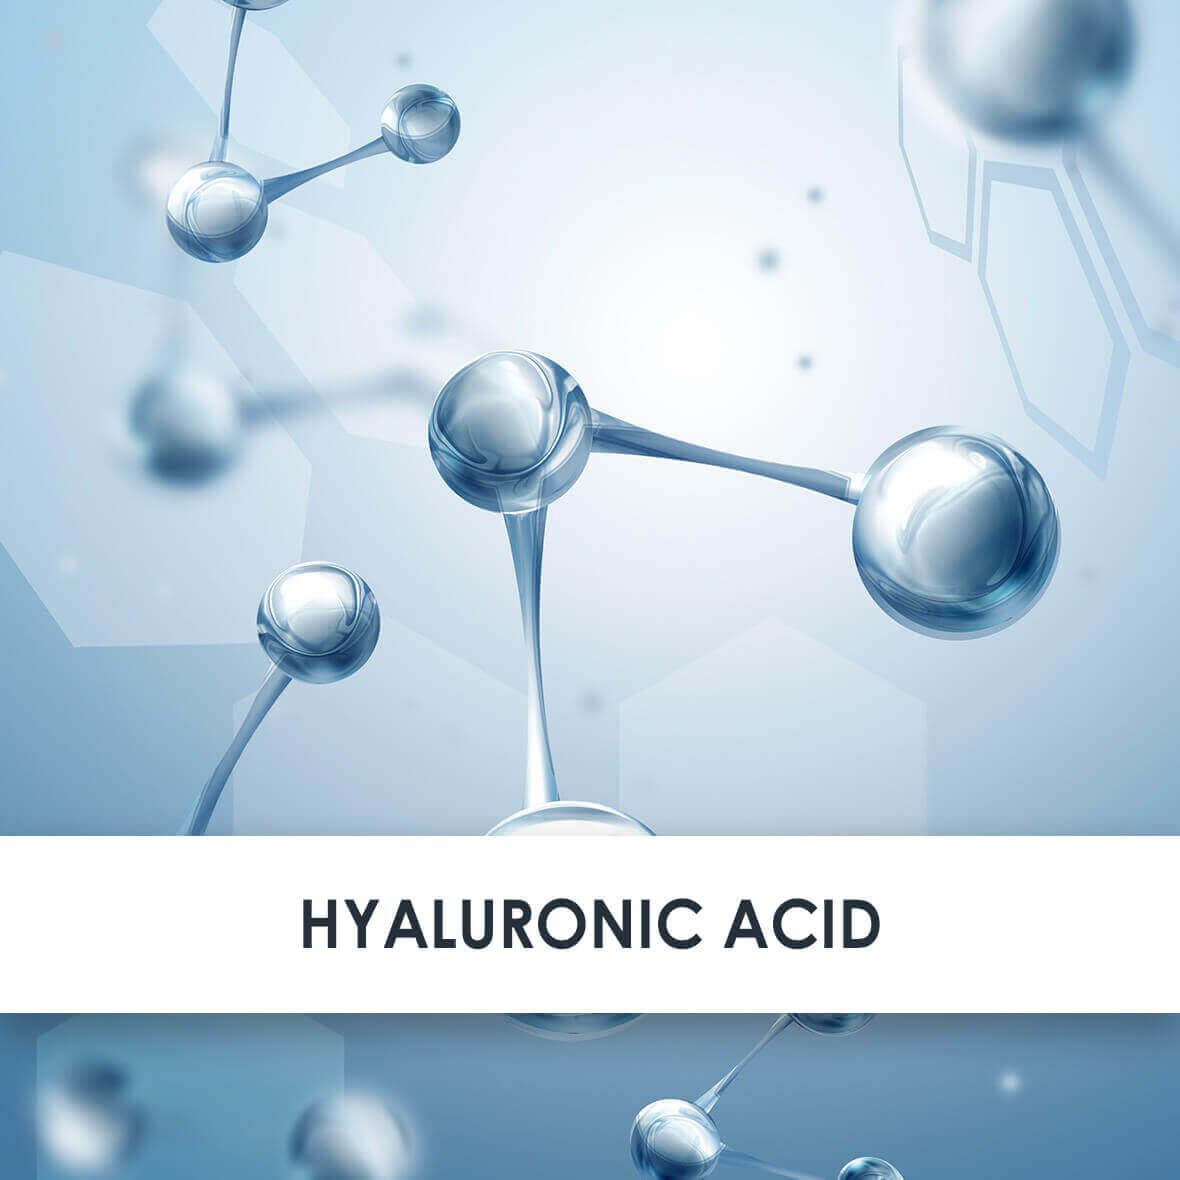 Hyaluronic Acid Skincare Benefits